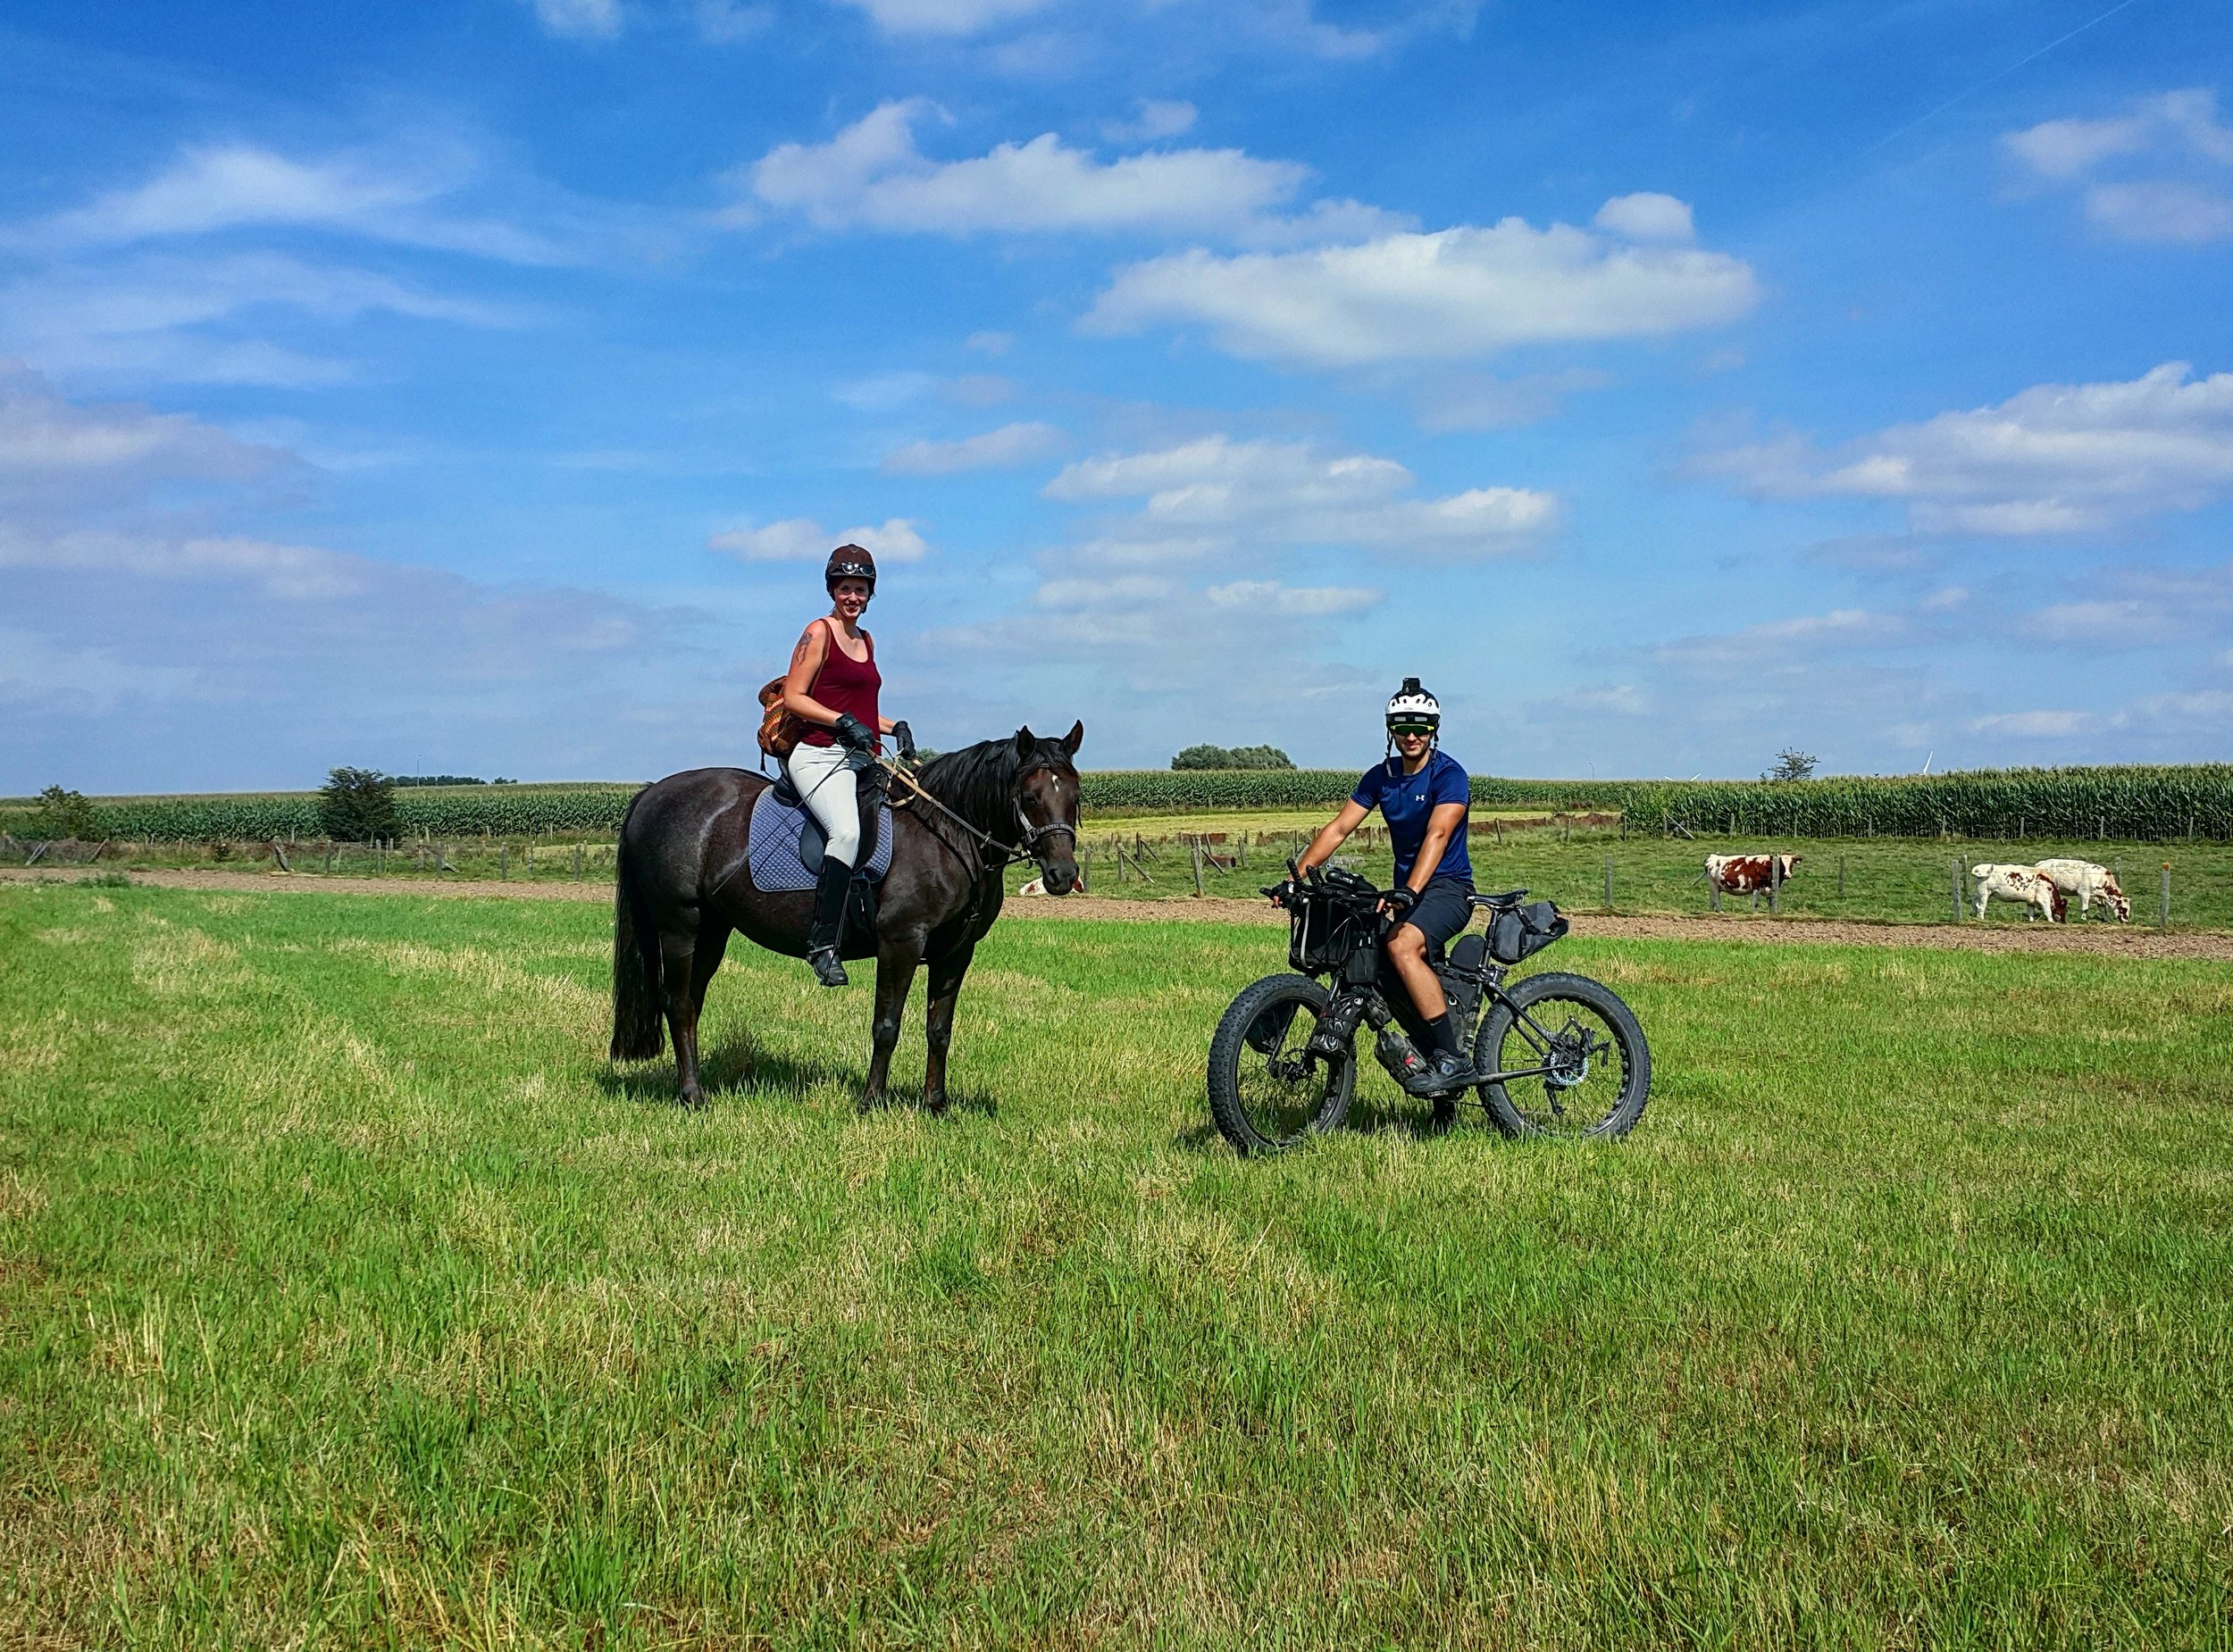 Taking the steeds out through the fields.